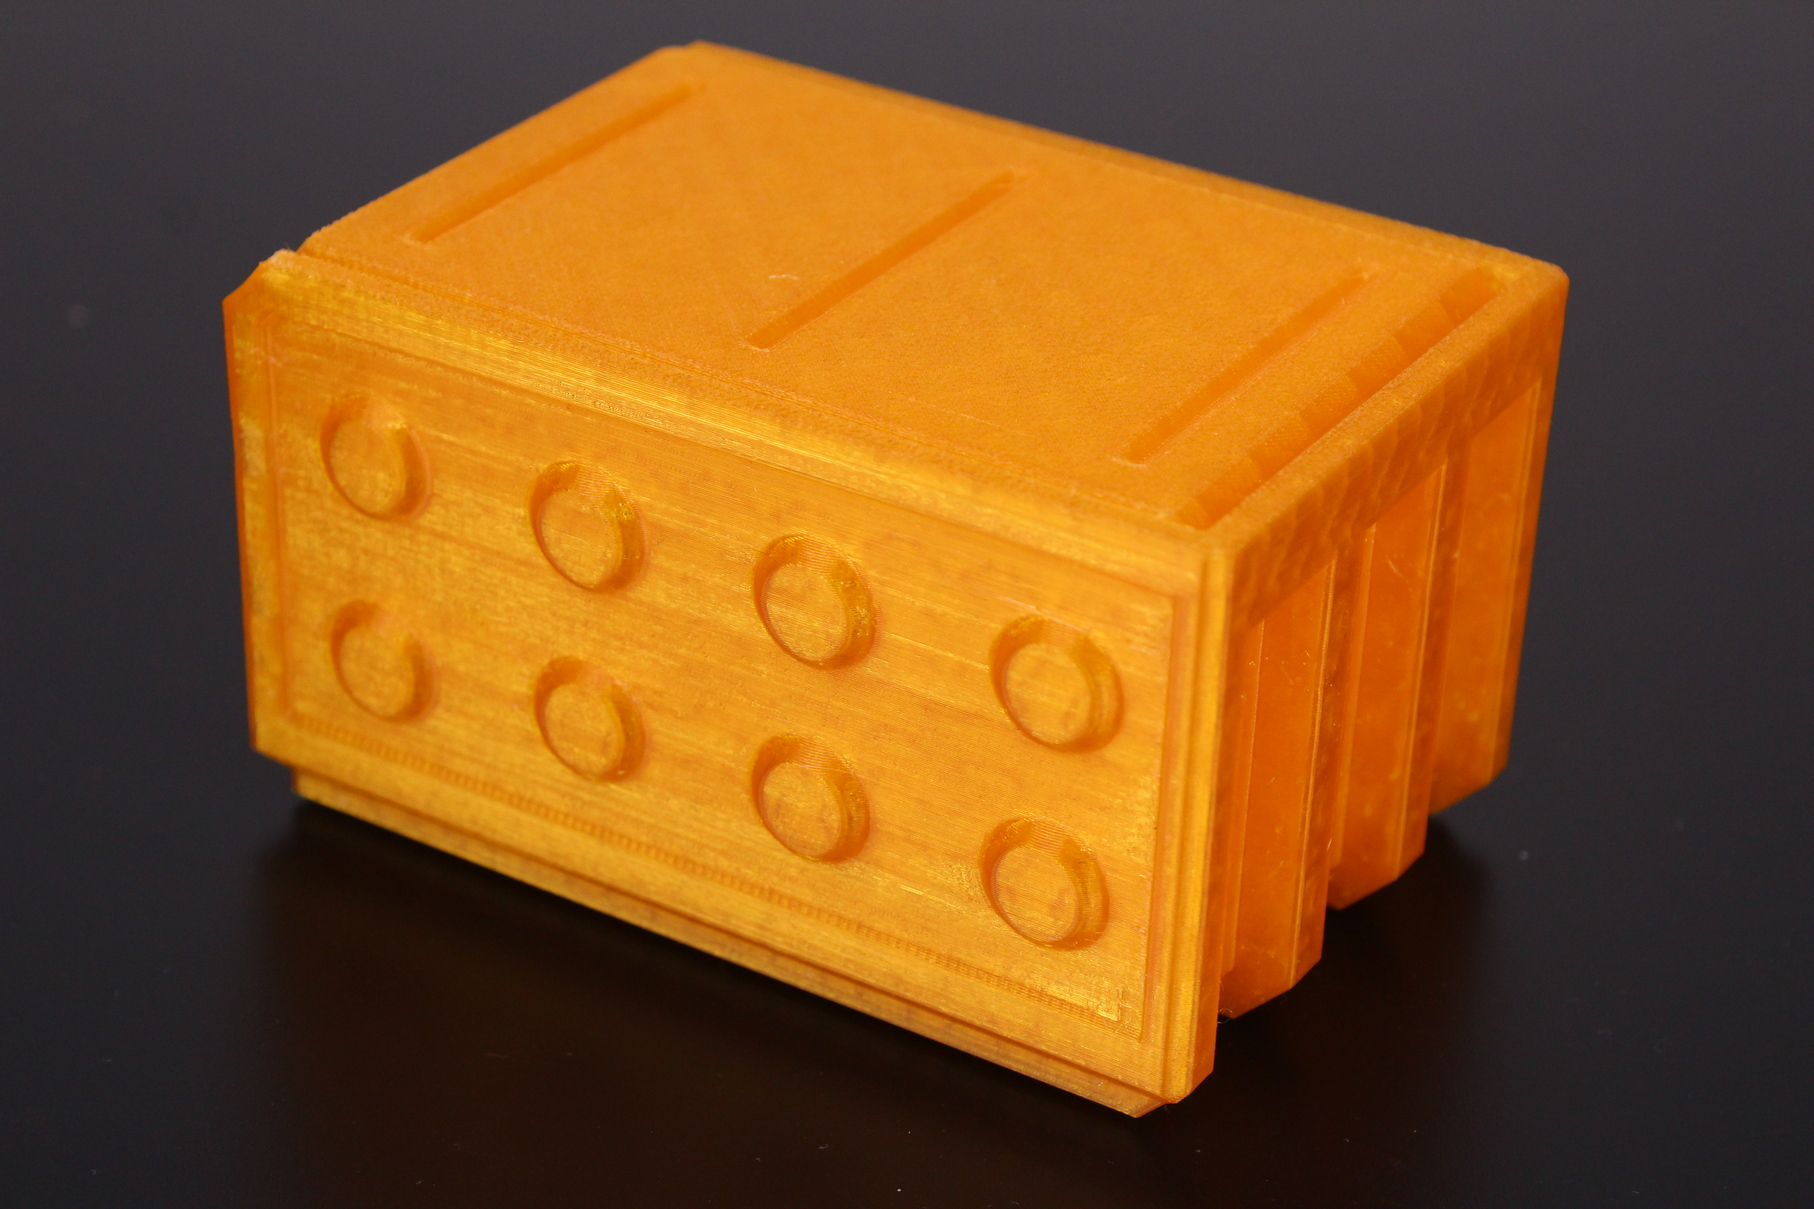 24-AA-Battery-Crate-printed-in-PETG-with-Fysetc-Prusa-Mini-Clone-6